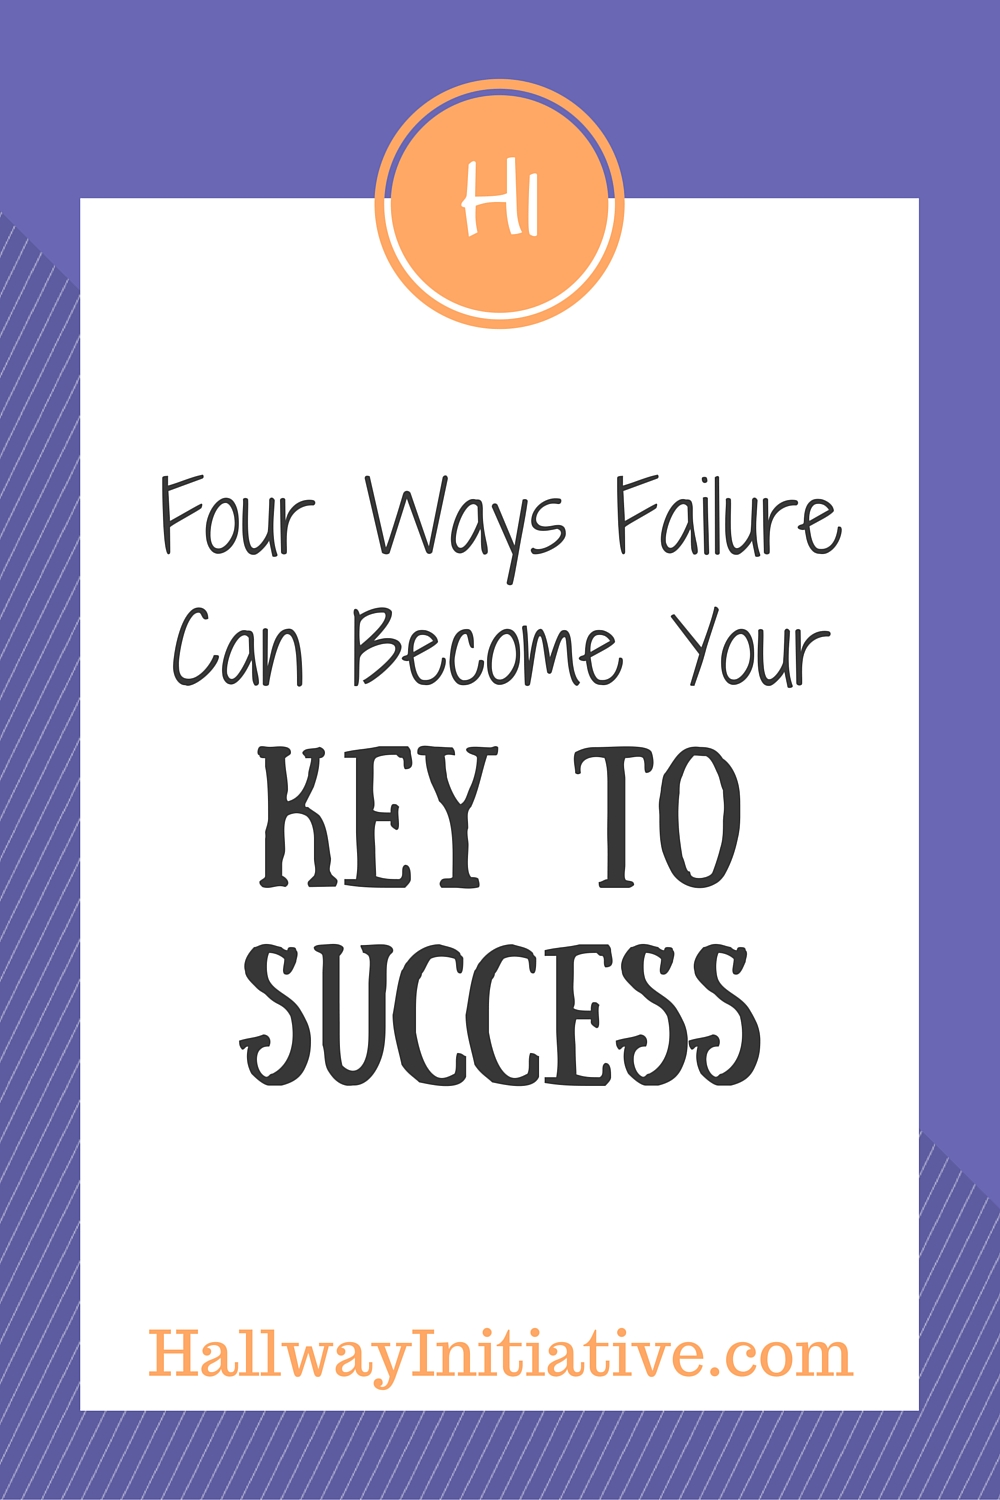 4 ways failure can become your key to success